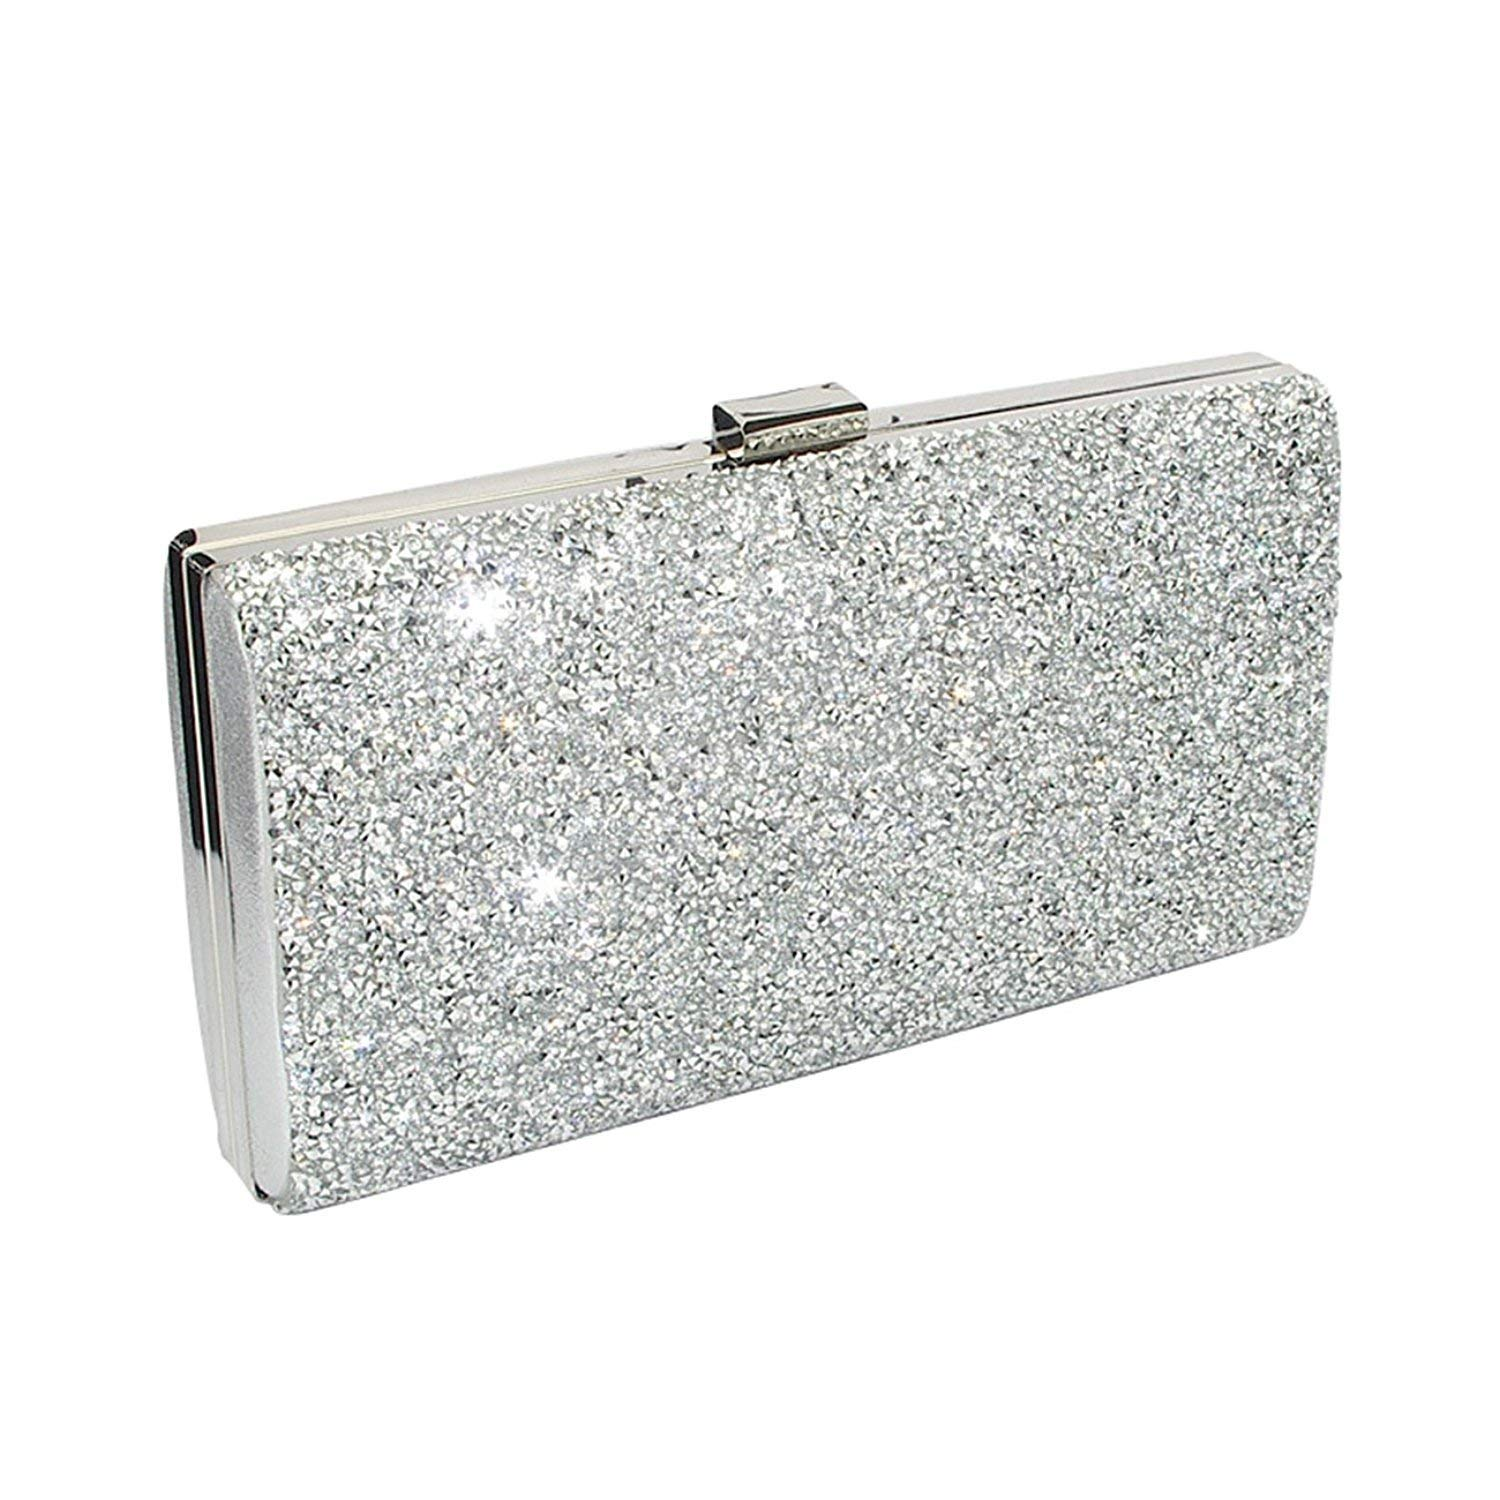 09c44683c4 Get Quotations · Asien Womens Rhinestone Clutch Glitter Beaded Purse Silver  Clutch Evening Bags+Rhinestones Ring